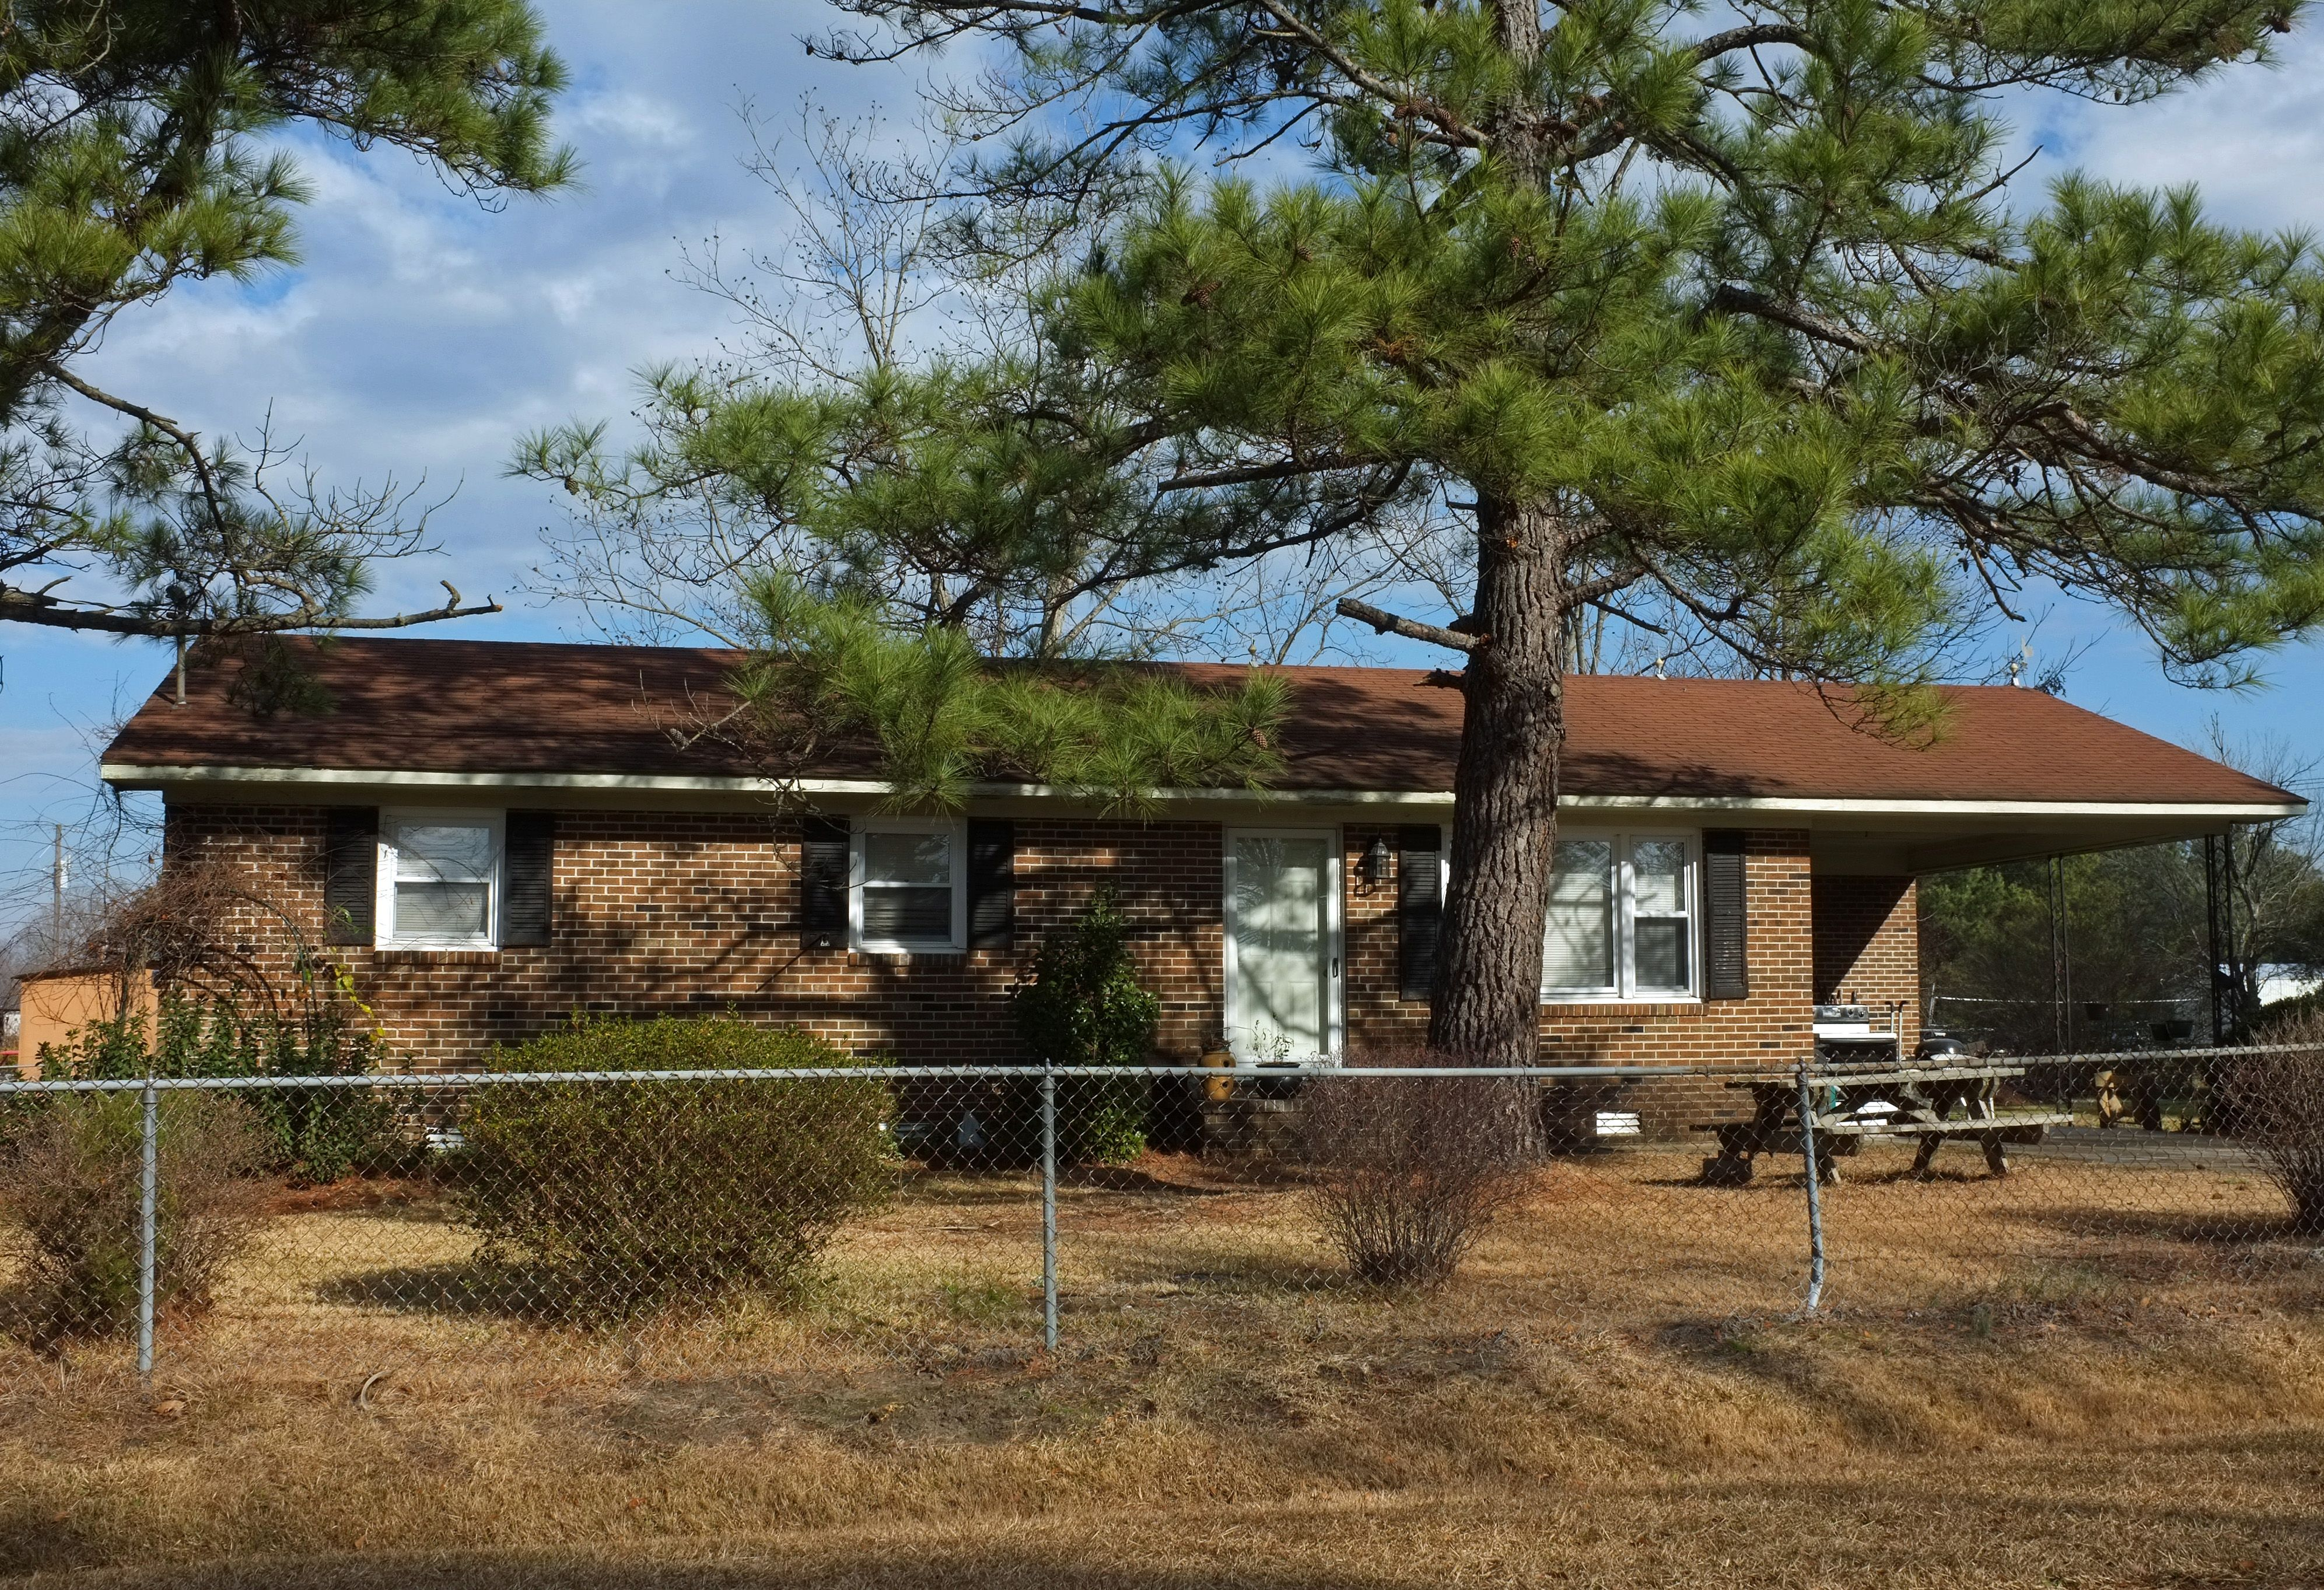 Brick Ranch Style Home With Carport Under Pine Trees